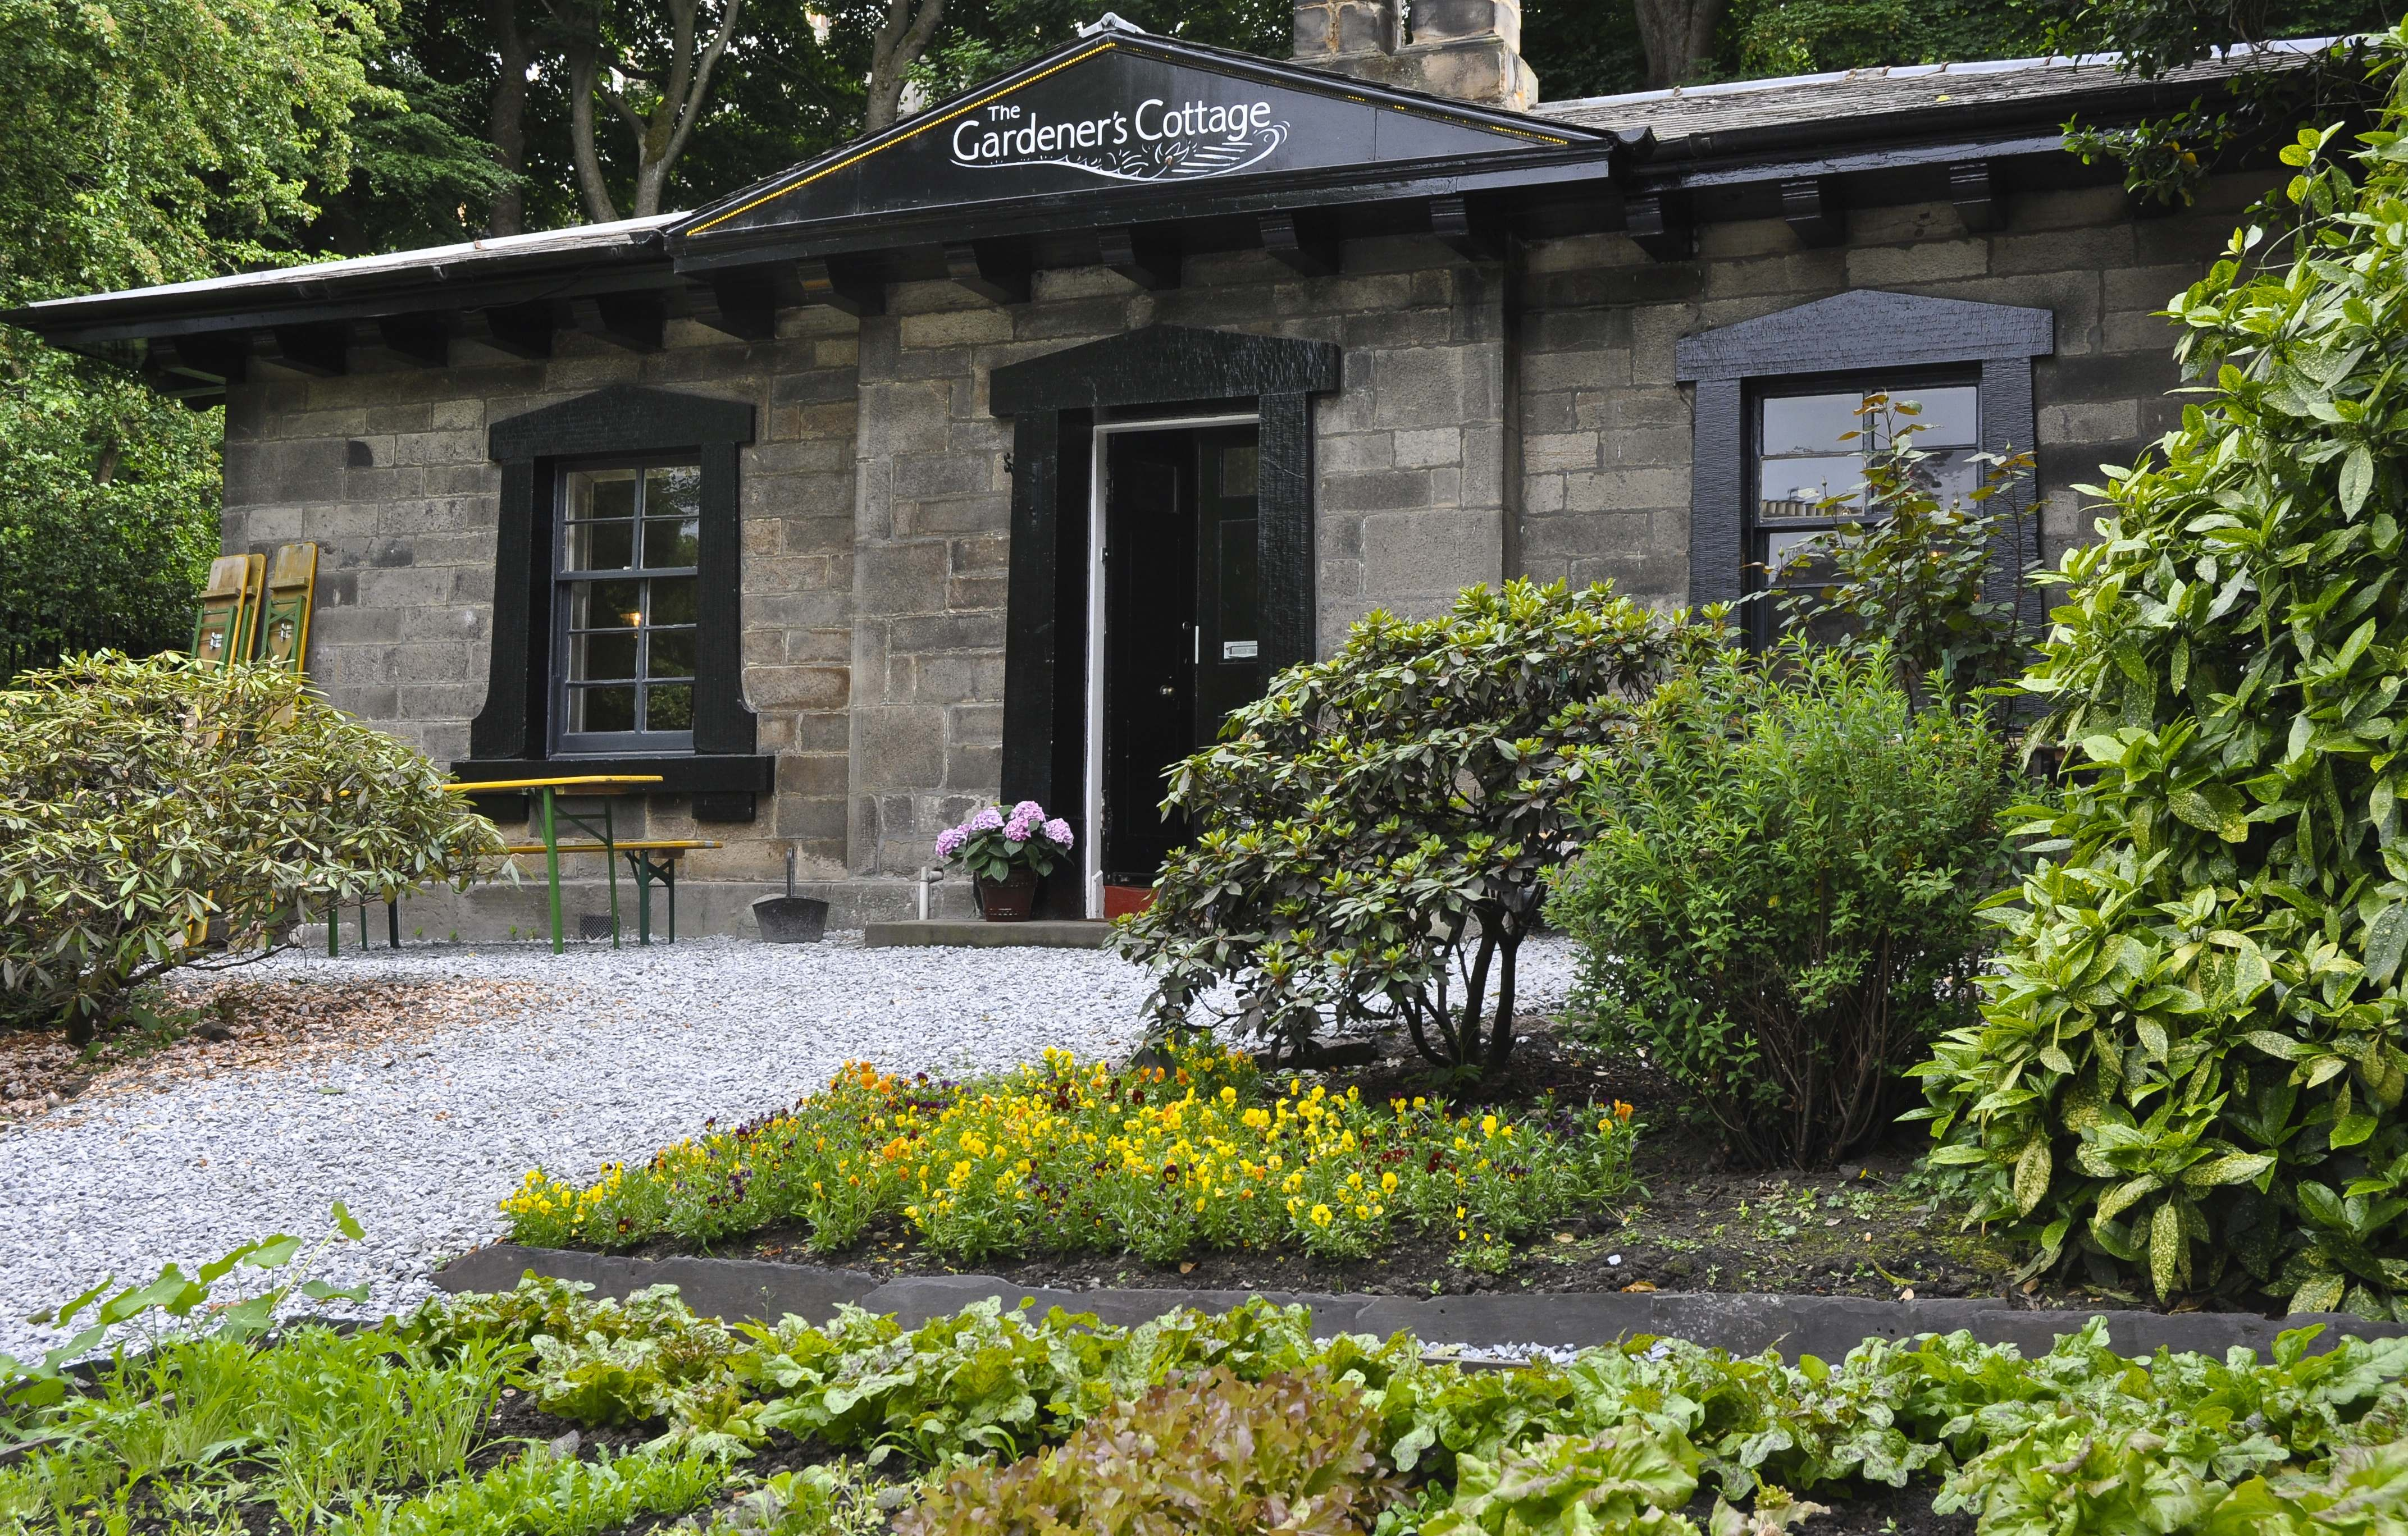 EAT: THE GARDENER'S COTTAGE